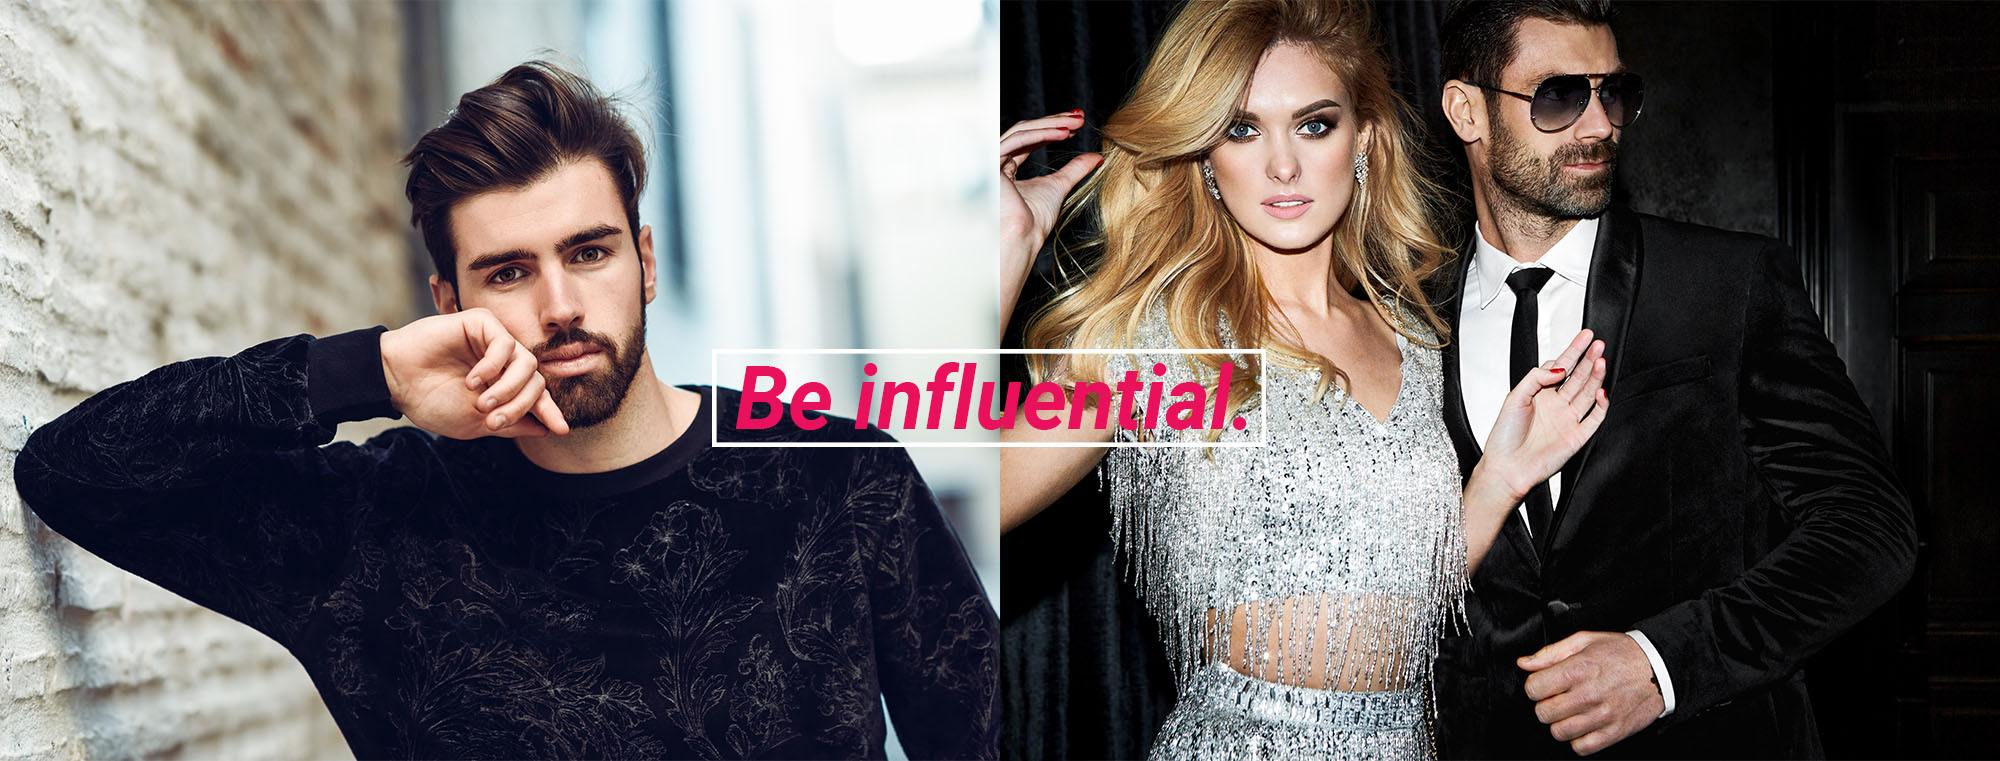 Be influental